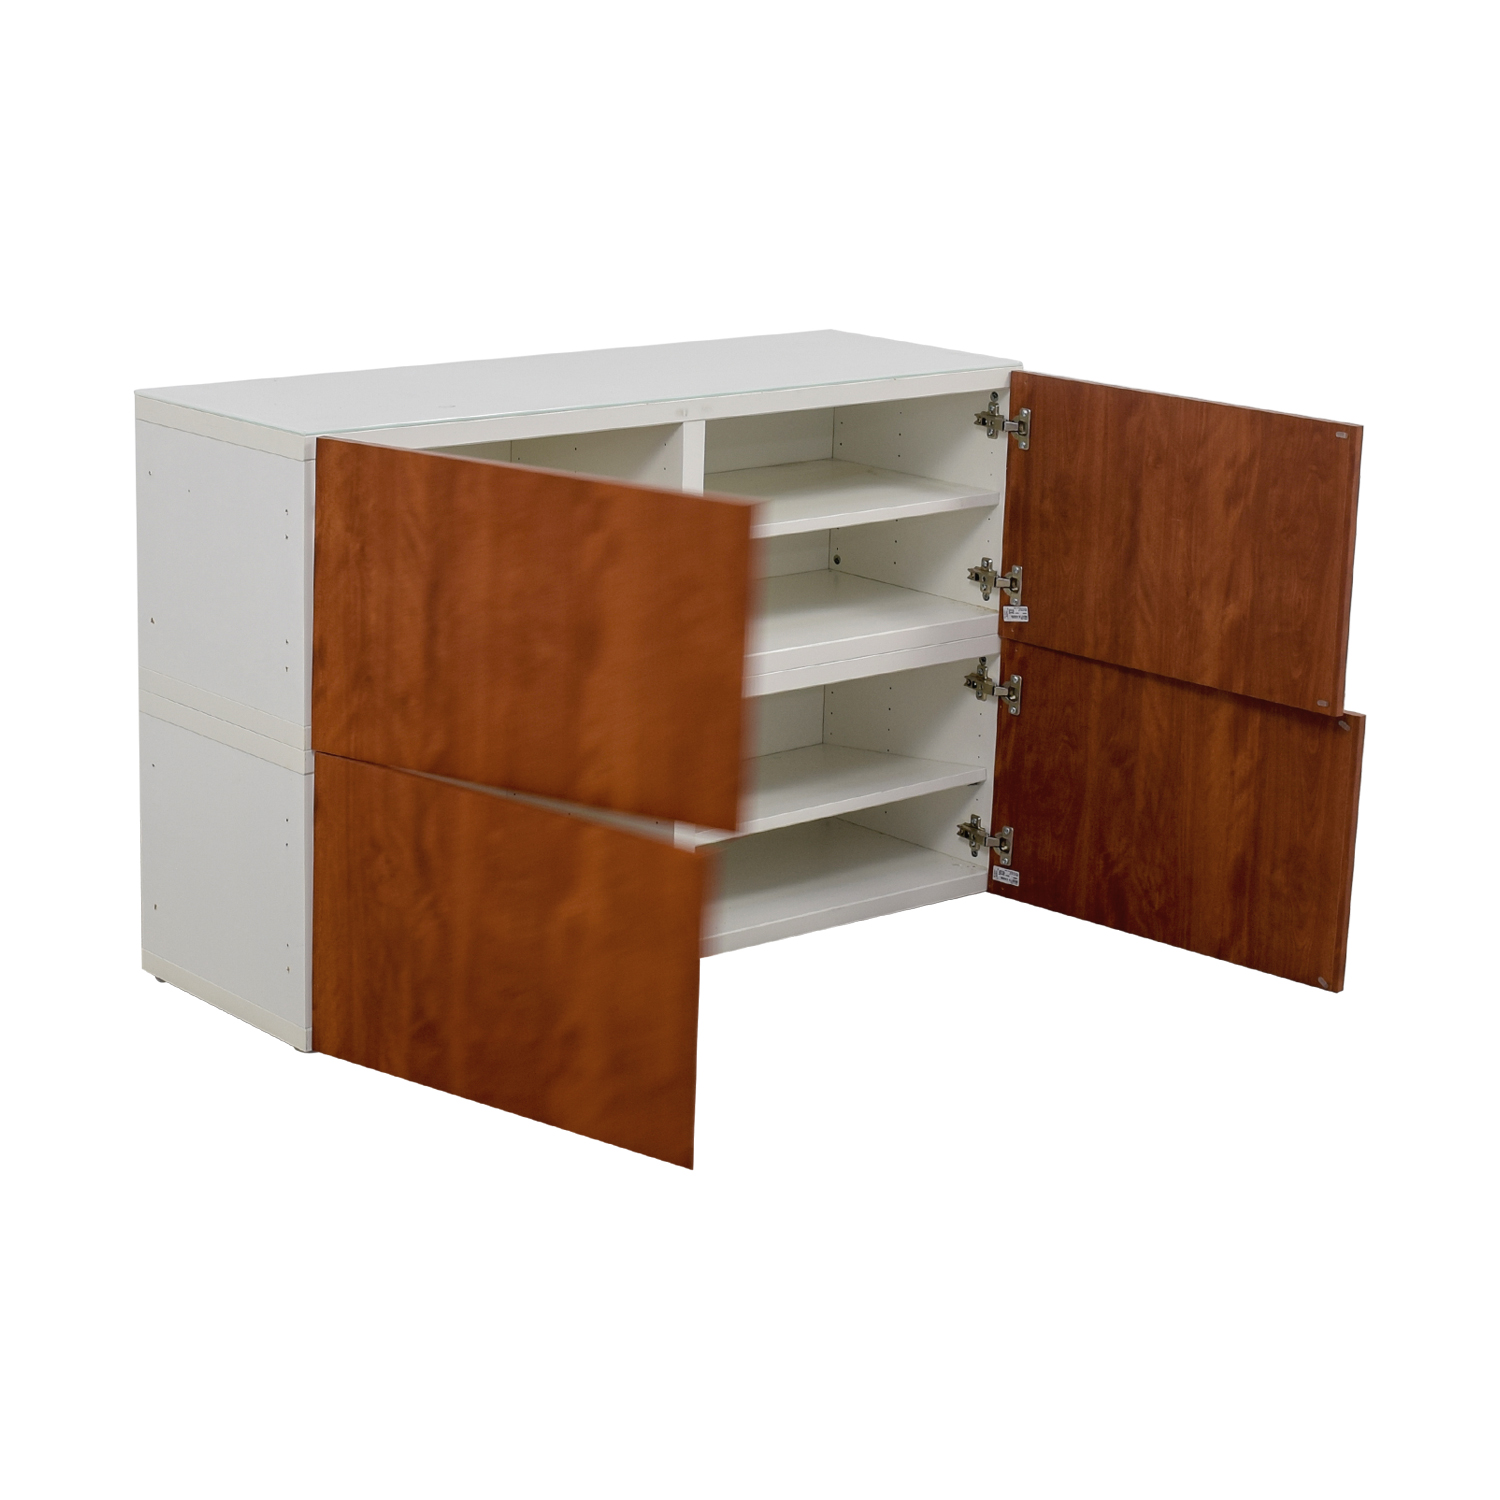 90 off ikea ikea white and wood media unit storage. Black Bedroom Furniture Sets. Home Design Ideas